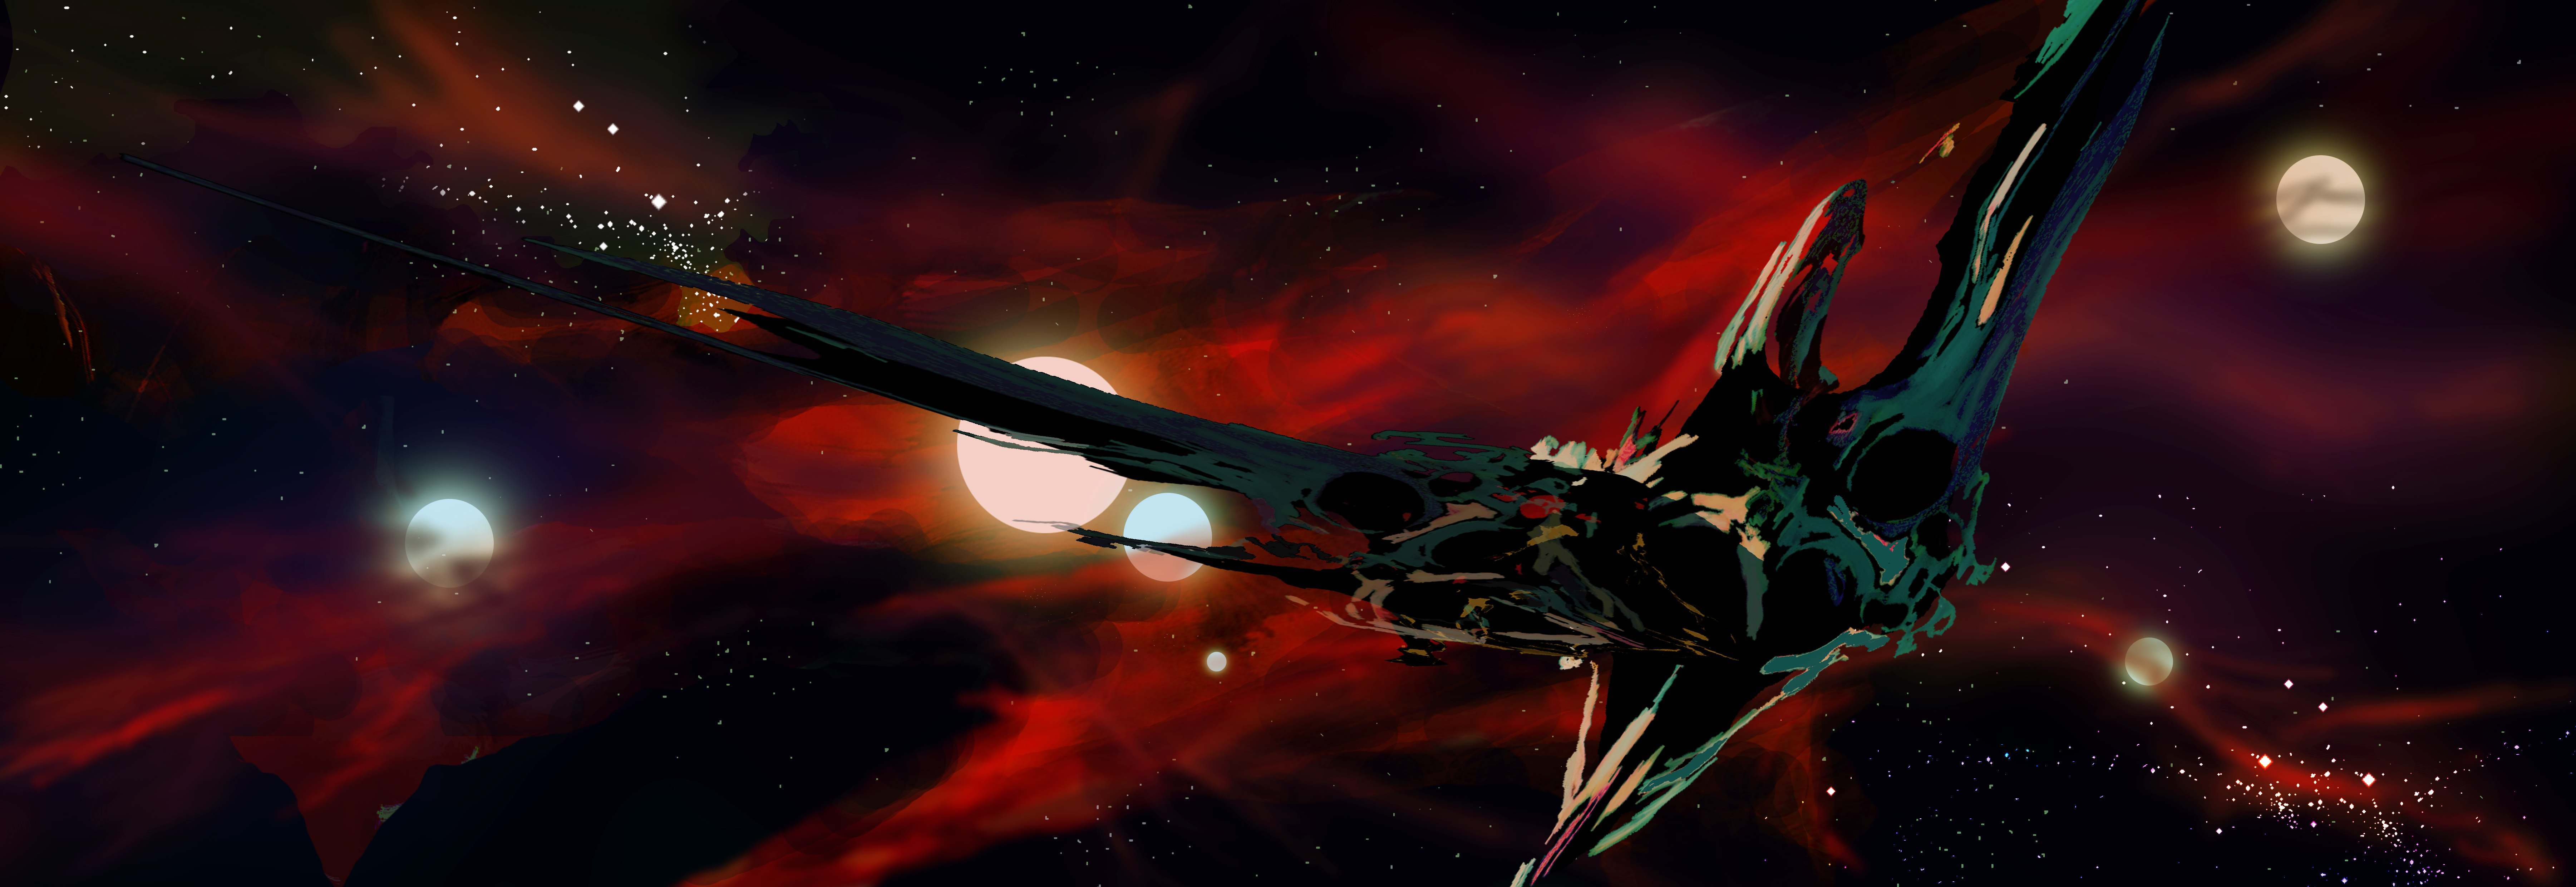 Spaceship 4k Ultra Hd Wallpaper Background Image 7205x2480